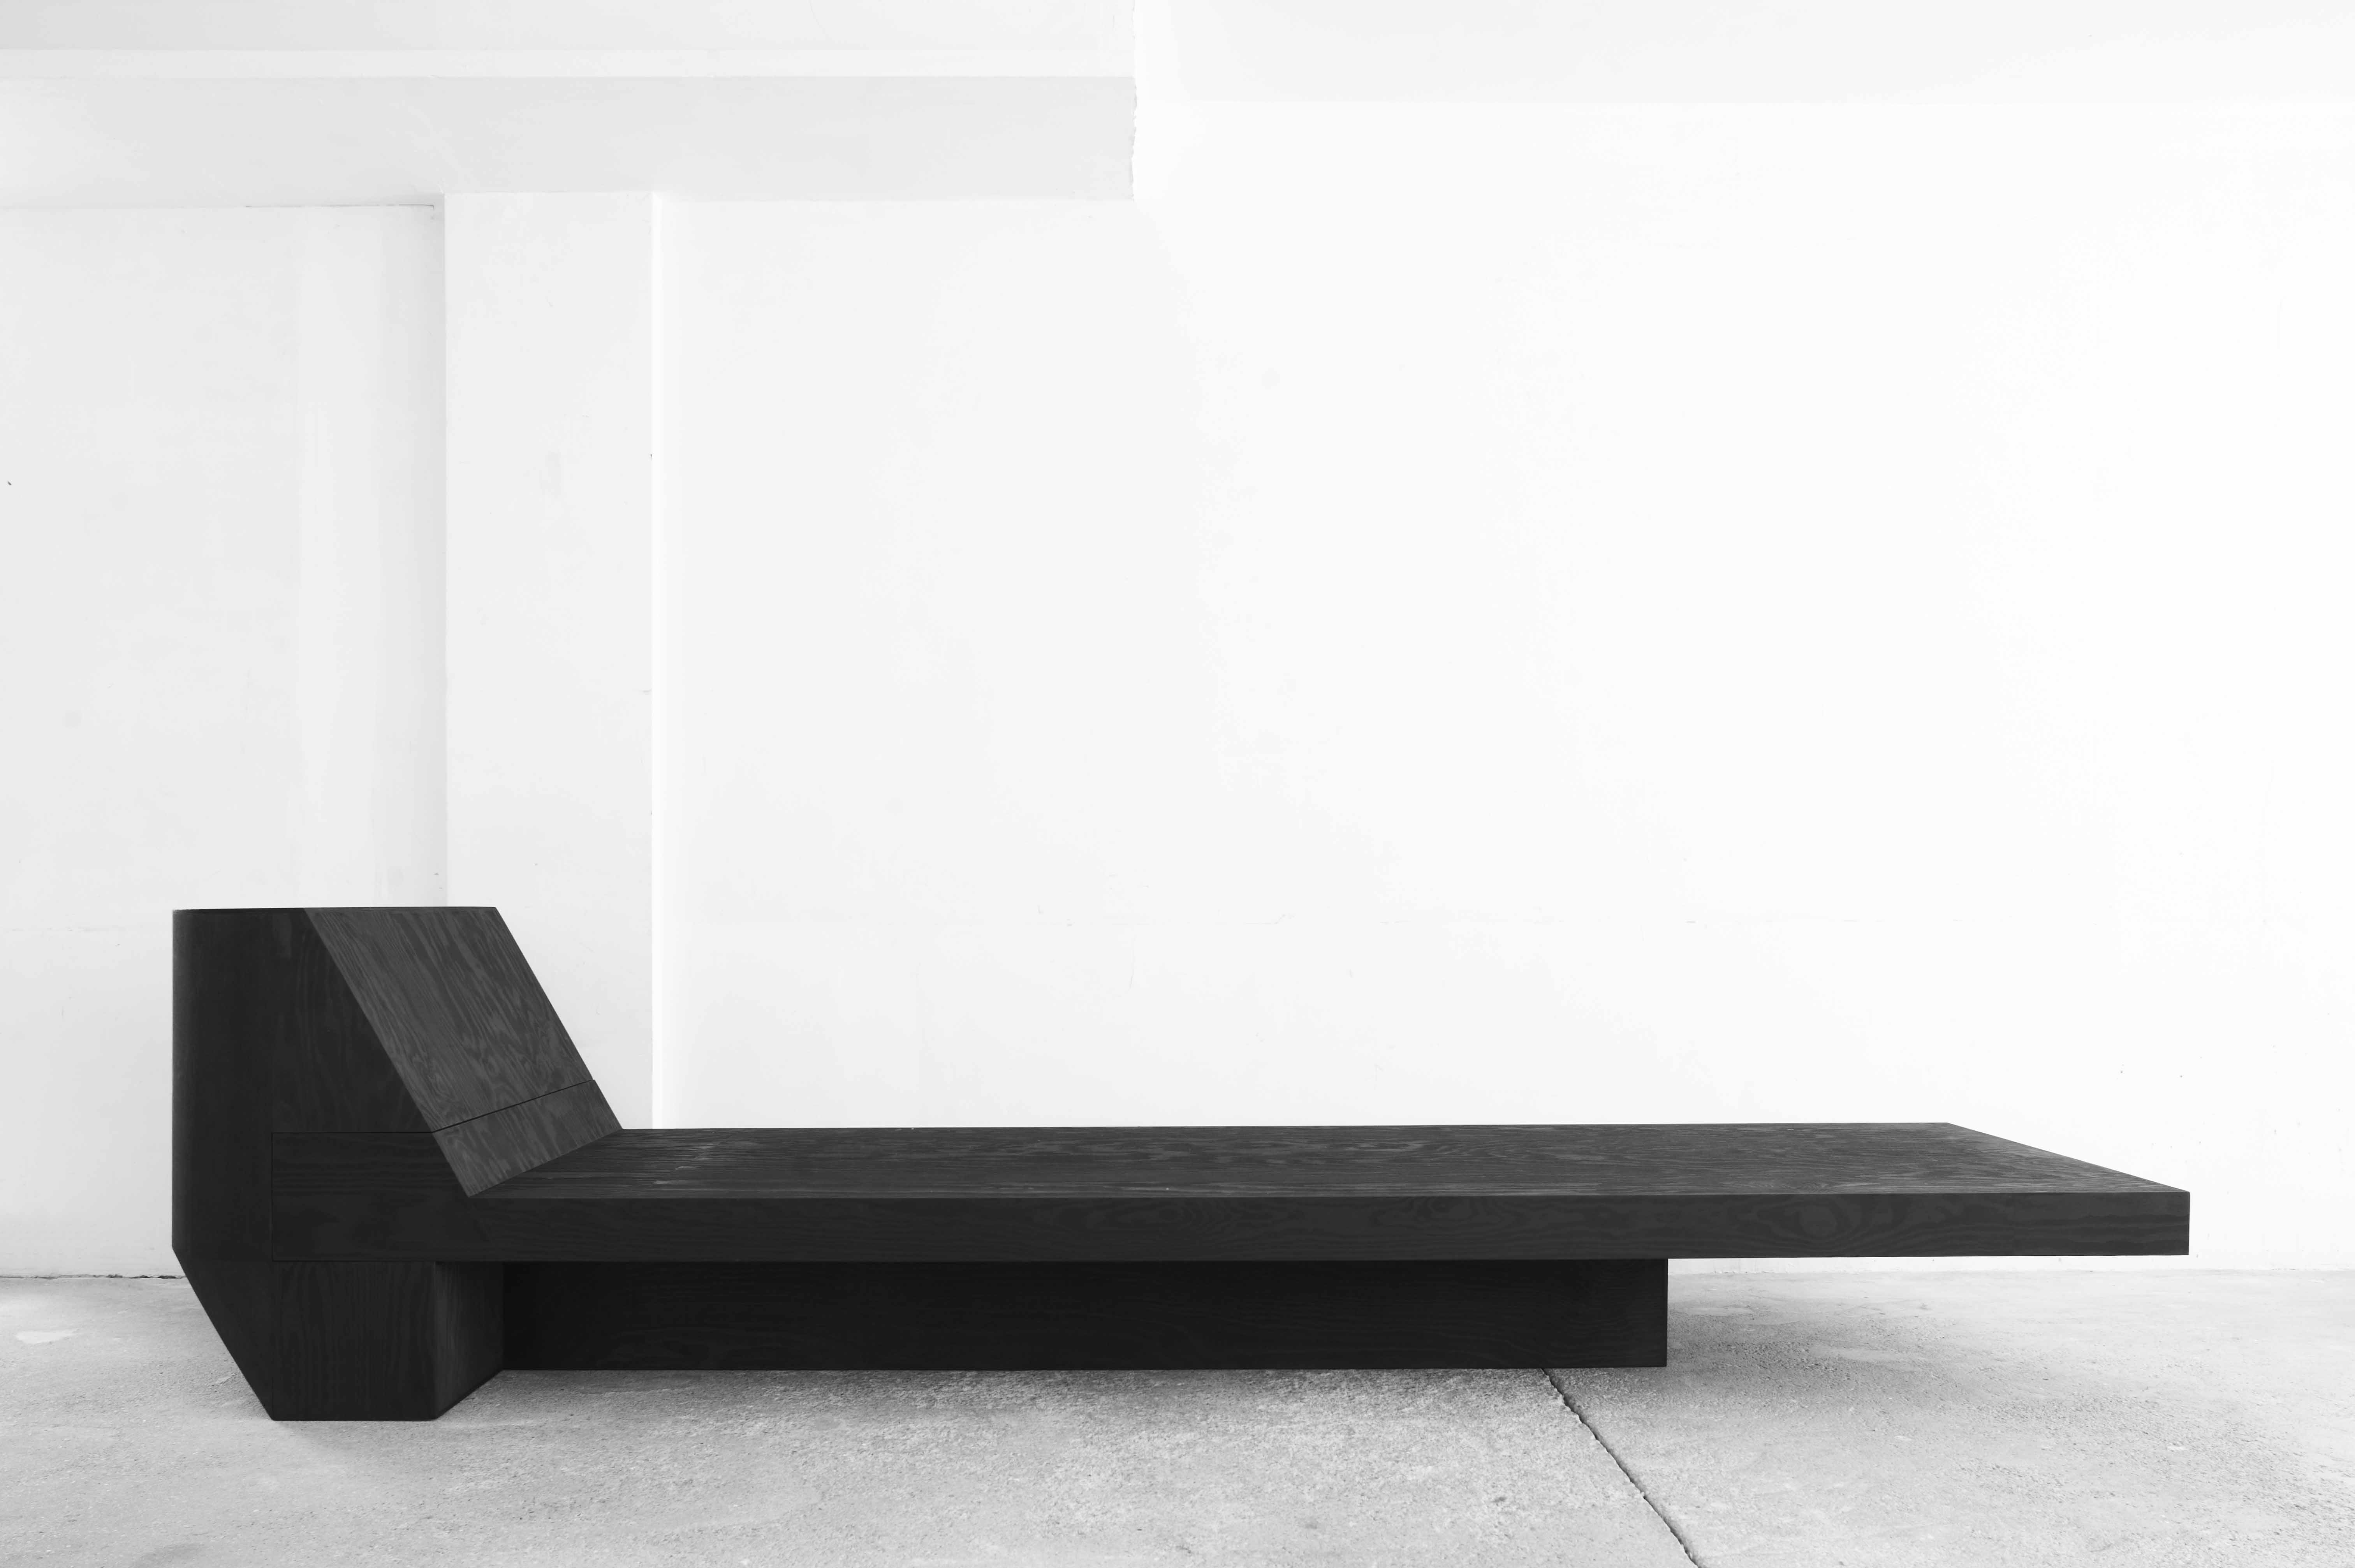 Rick Owen S Furniture Collection The Birth Of Brutalism